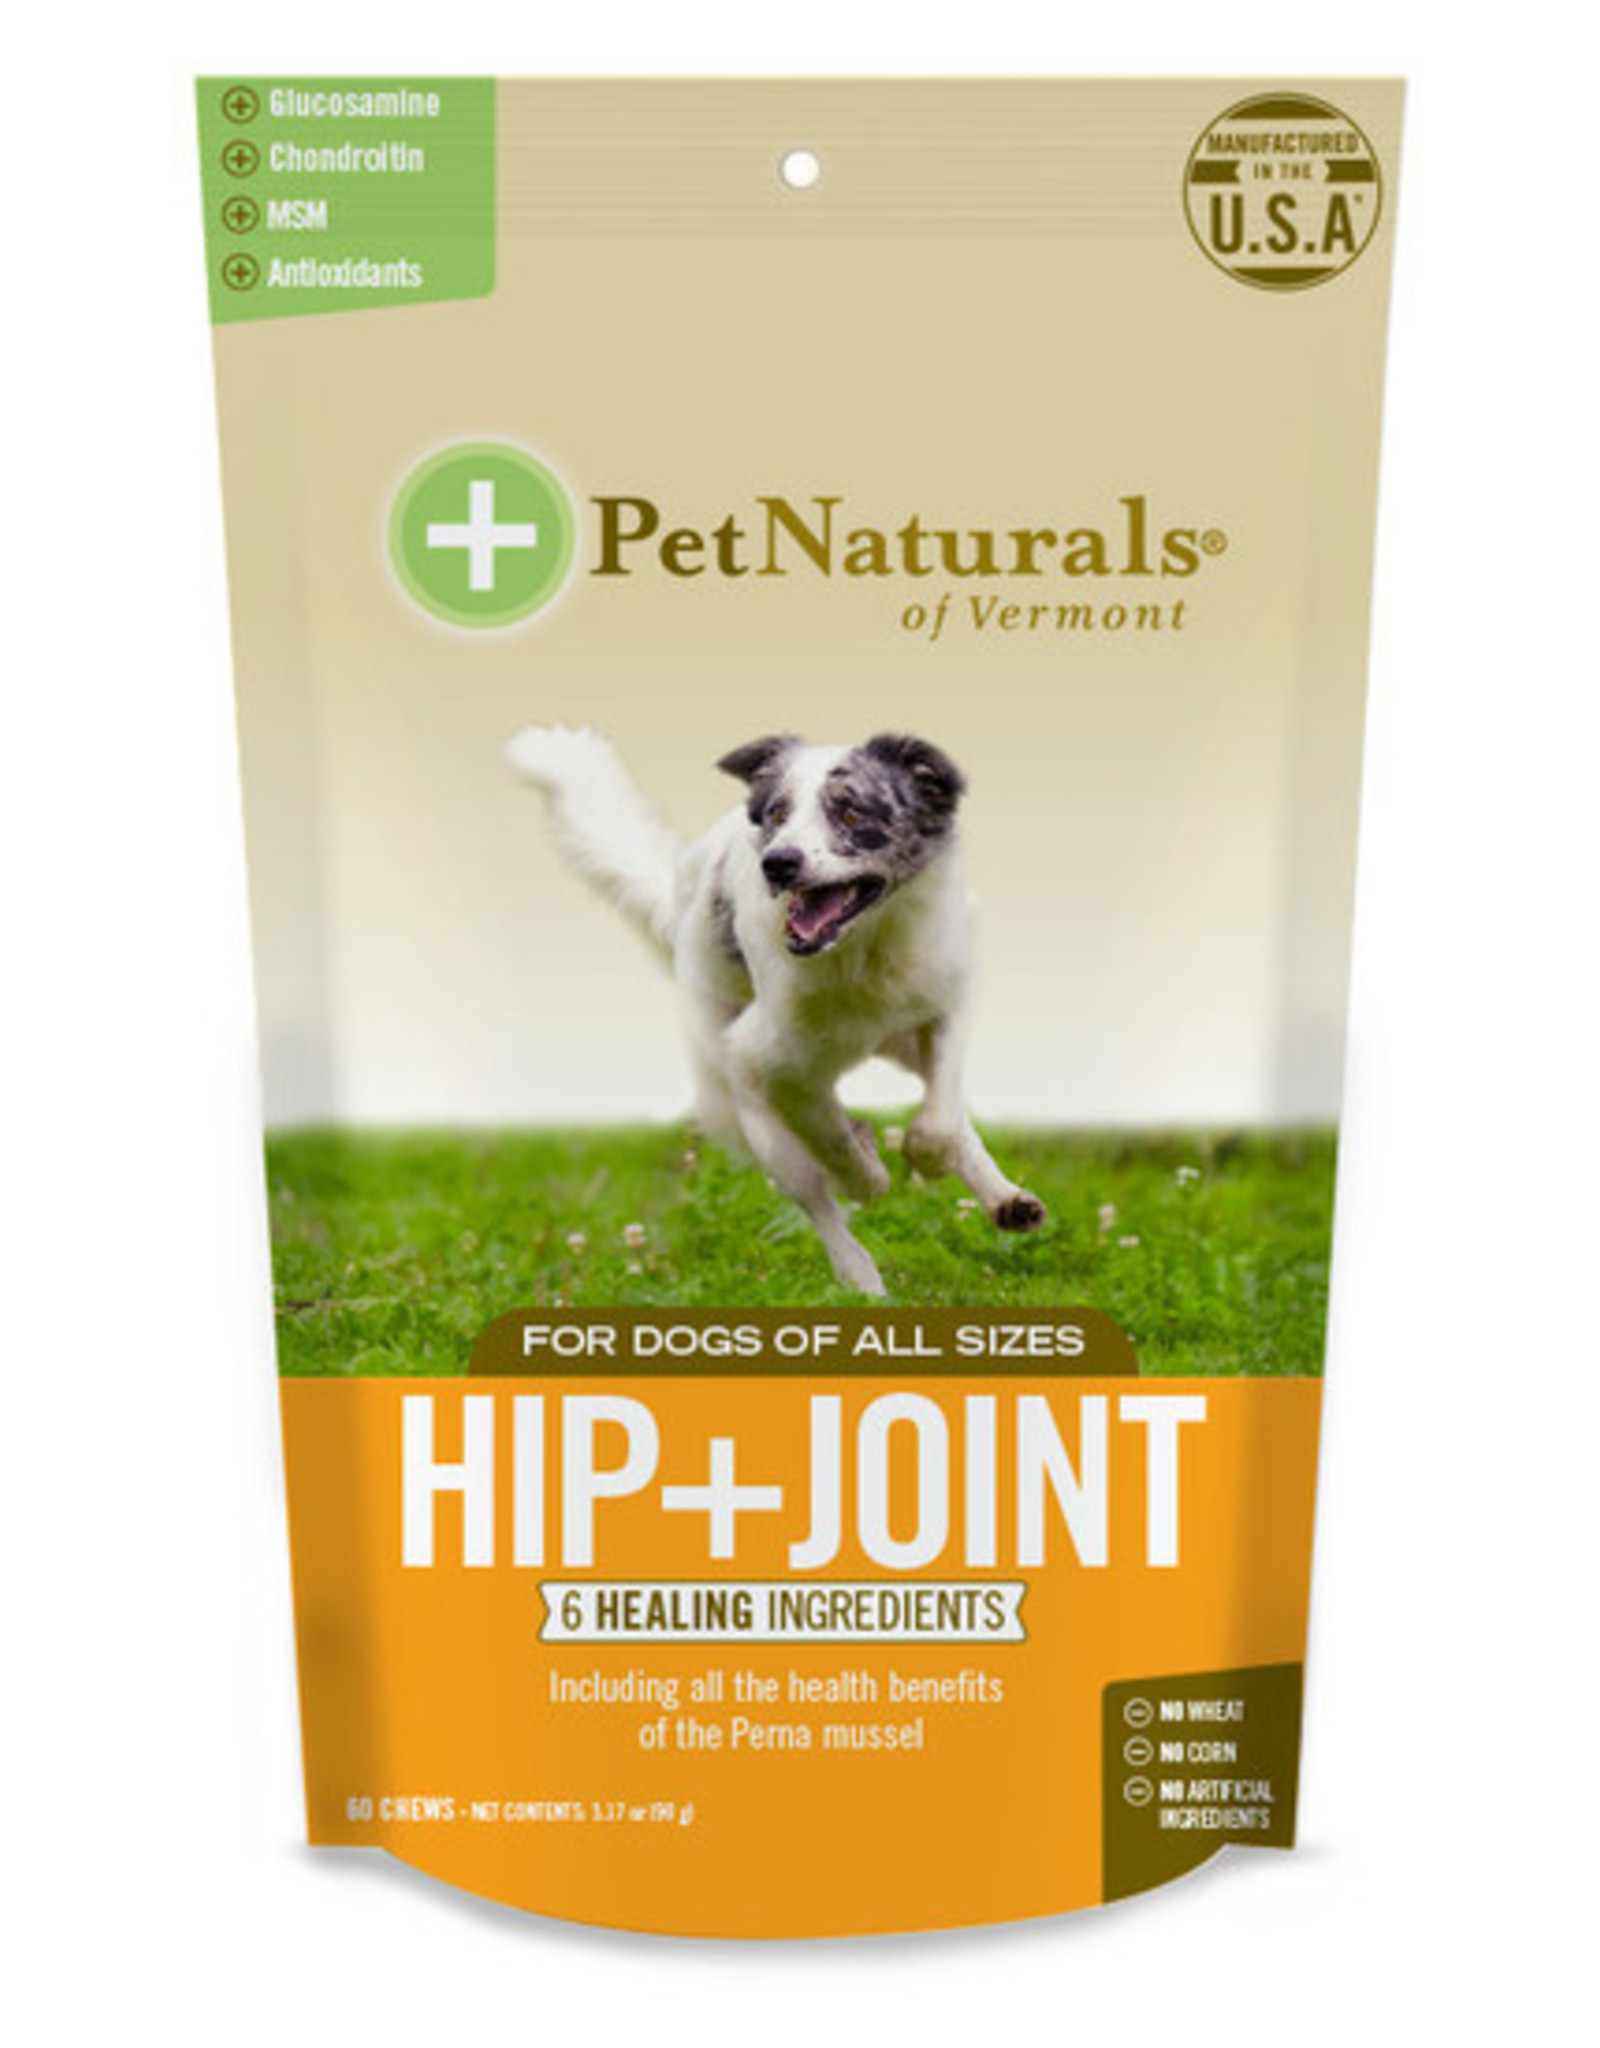 Pet Naturals of Vermont Pet Naturals of Vermont Dog Hip and Joint 60ct